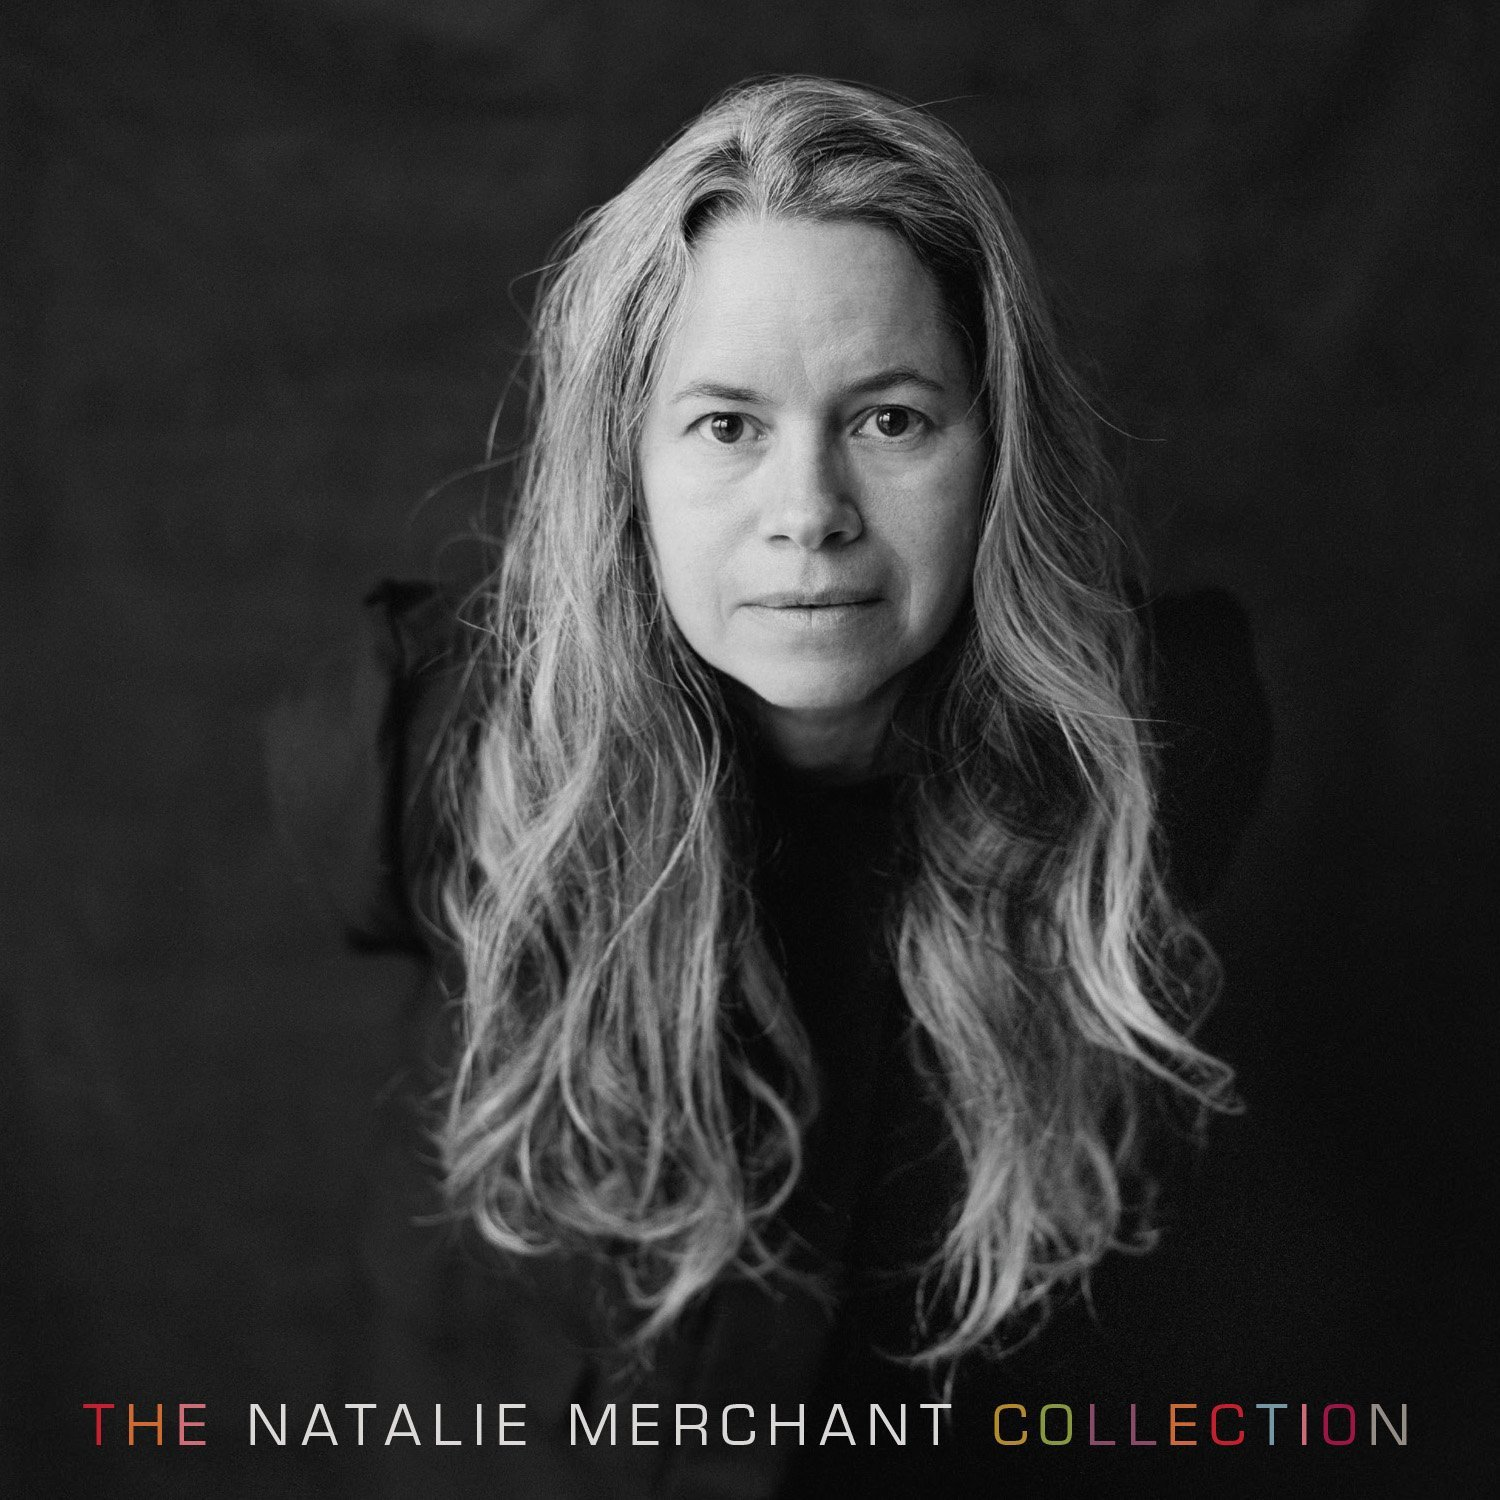 The Natalie Merchant Collection (10CD) by Nonesuch